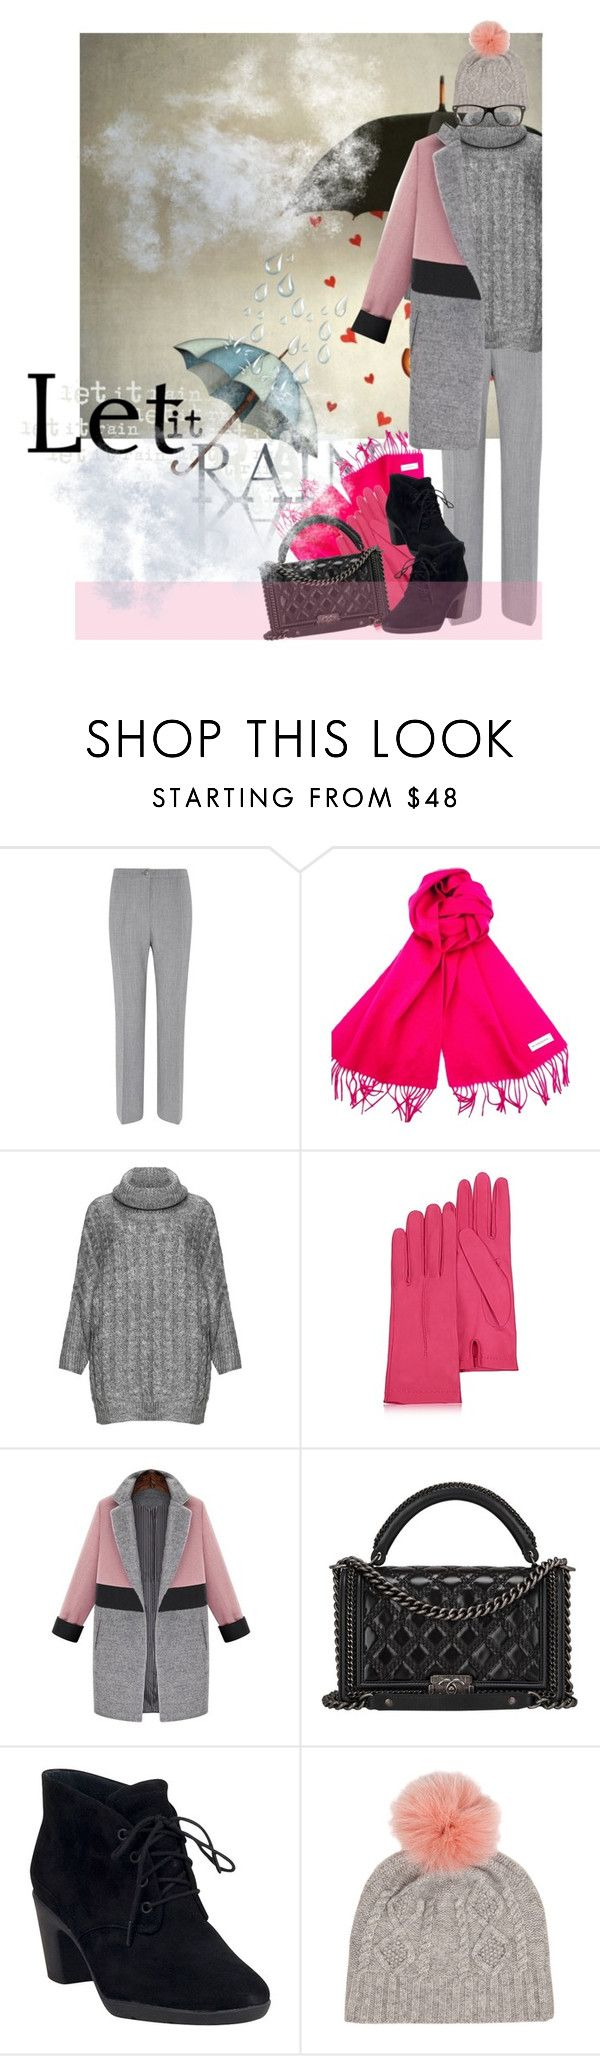 """""""One picture and text : Cosy in winter rain"""" by no-where-girl ❤ liked on Polyvore featuring Viyella, Yves Saint Laurent, Zizzi, Forzieri, Chanel, Clarks, IDA and Ray-Ban"""